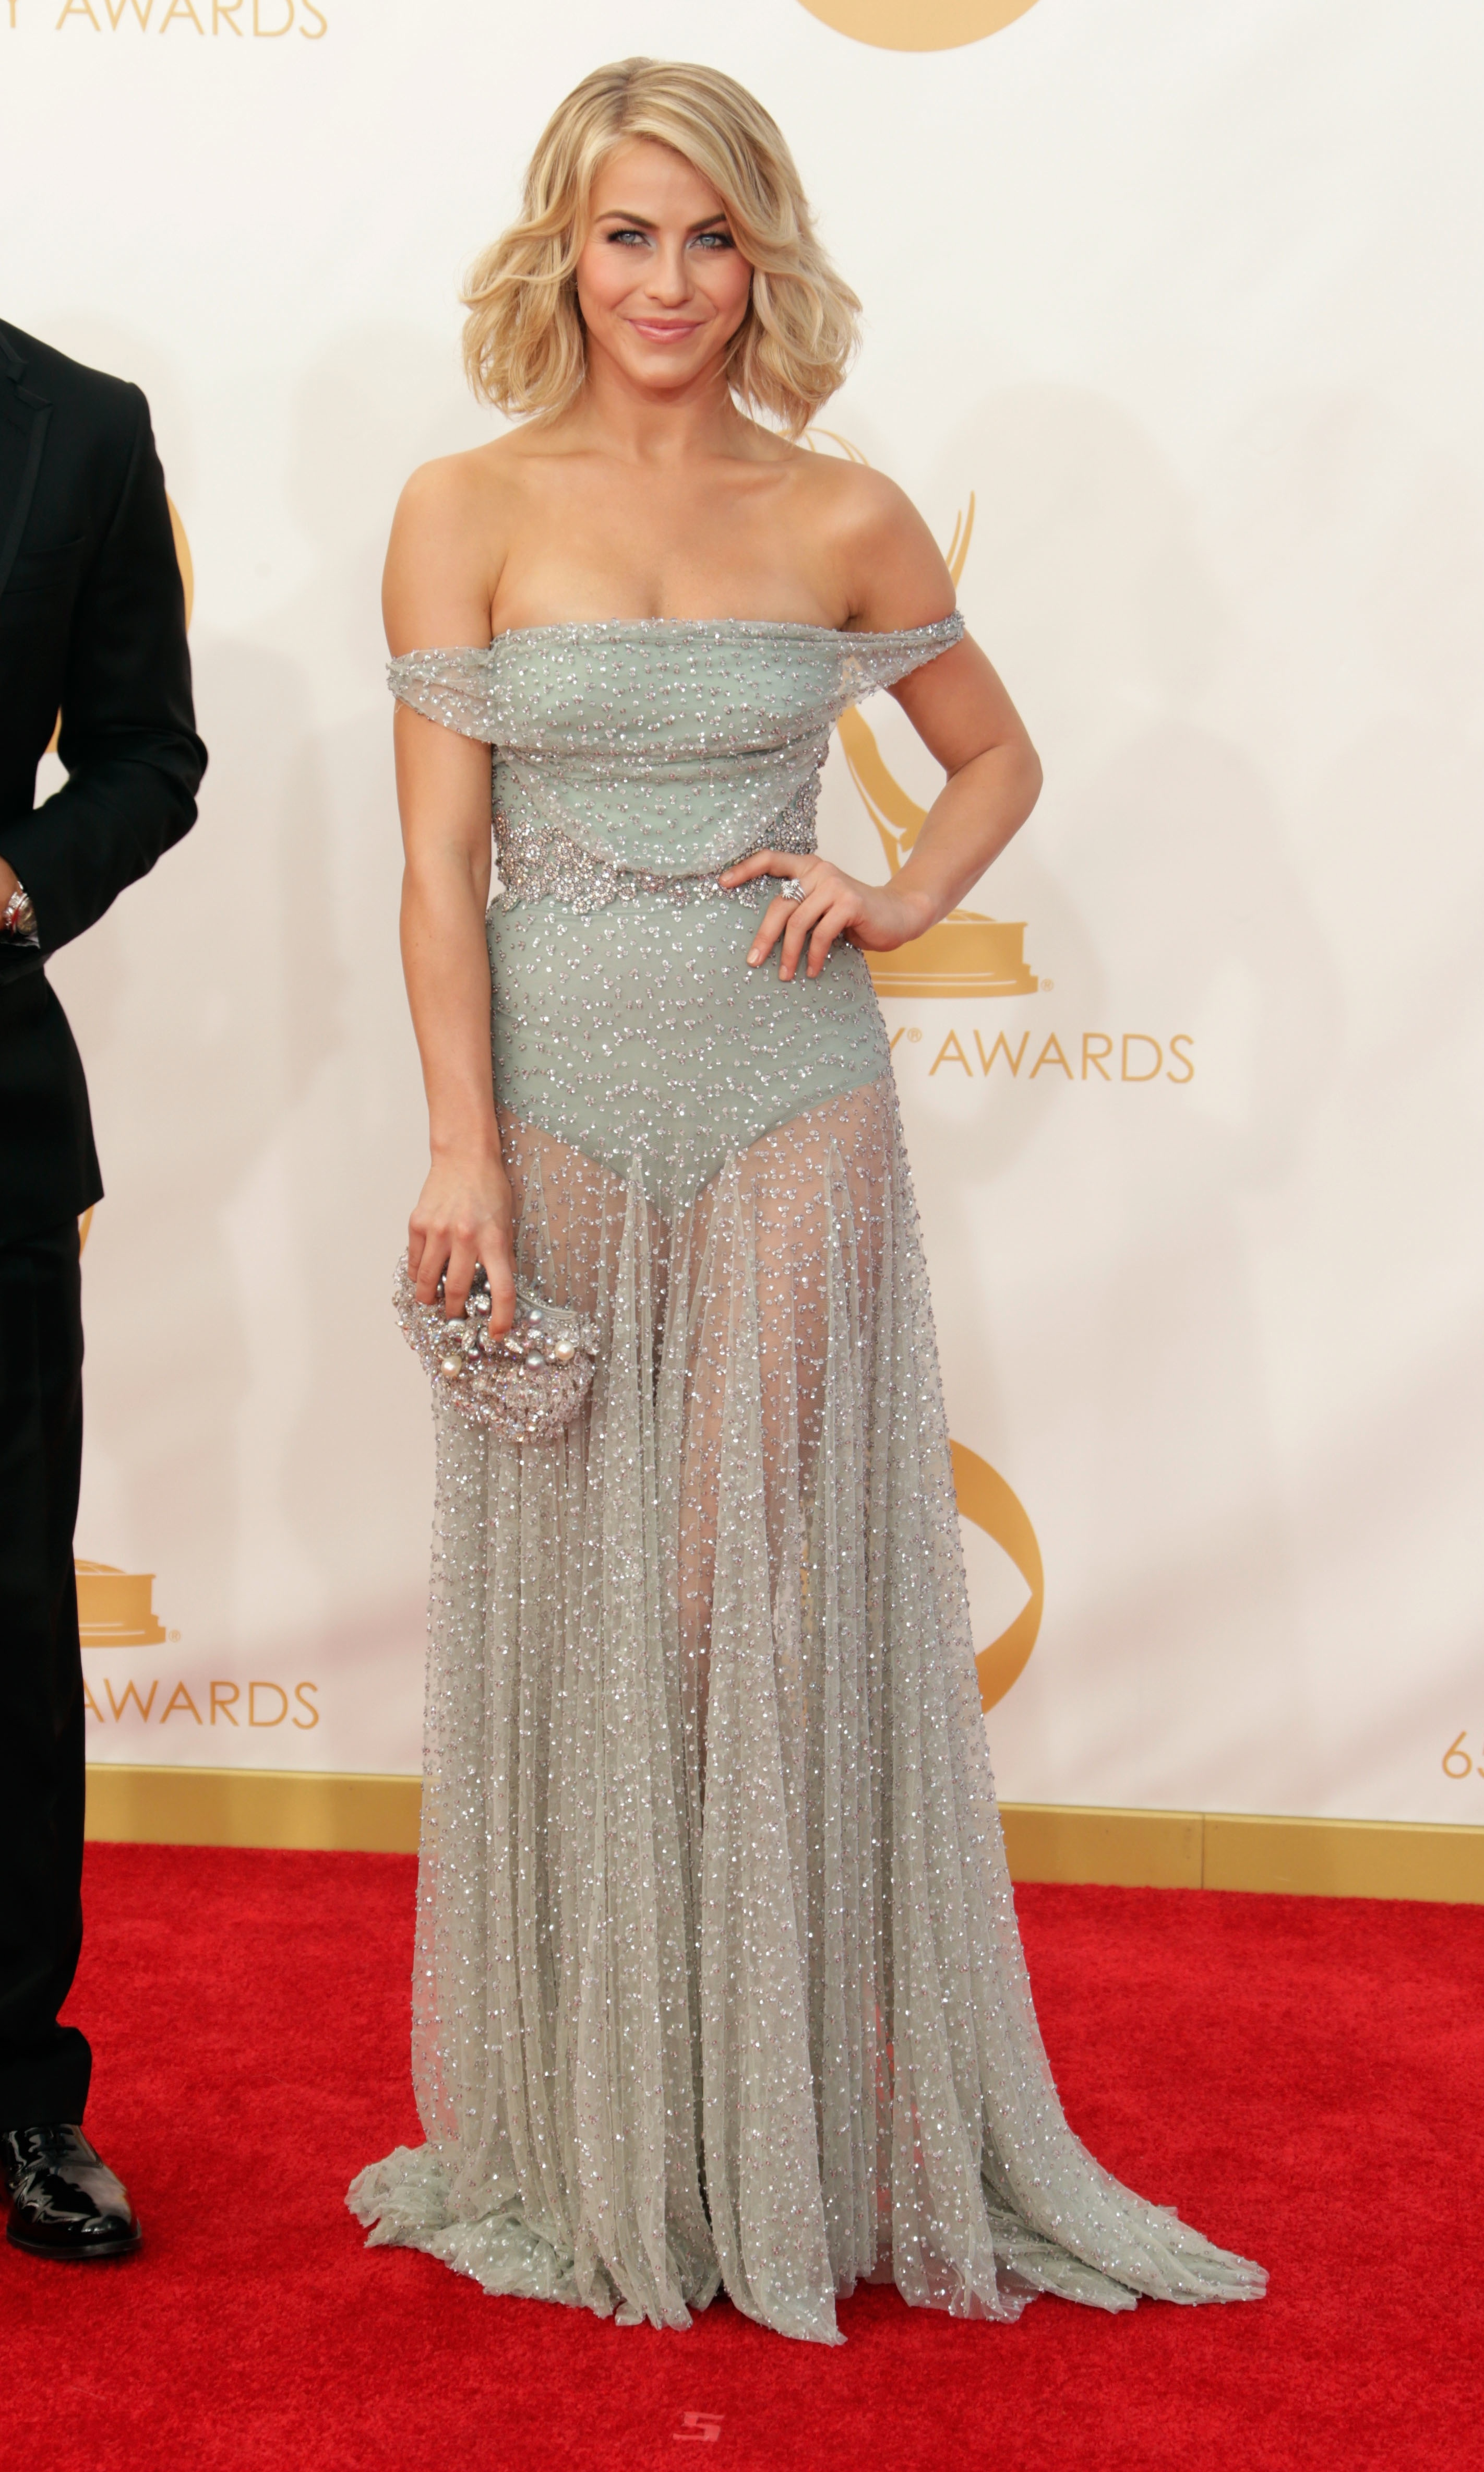 We've seen a lot of leg this past year in sheer skirts, but Julianne Hough's gauzy grey Jenny Packham gown feels fresh thanks to the delicate, off-shoulder detail.